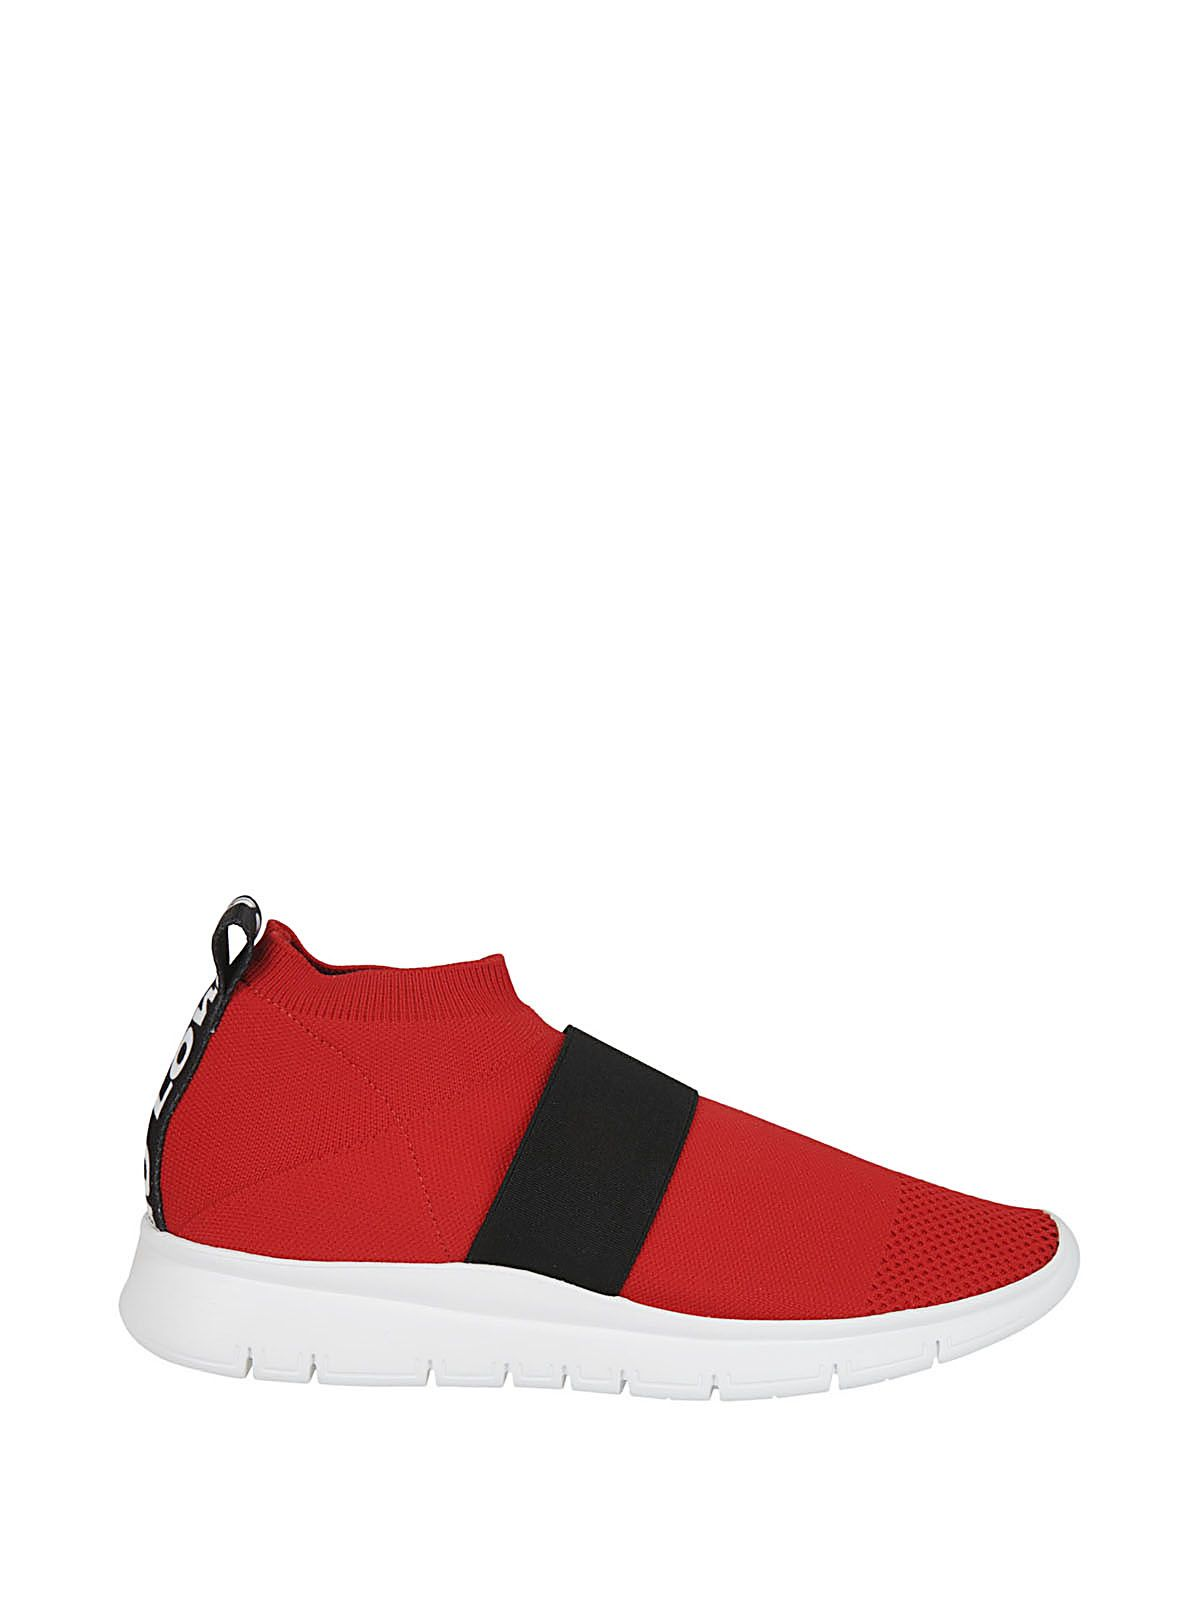 Joshua Sanders Pull-on Sneakers